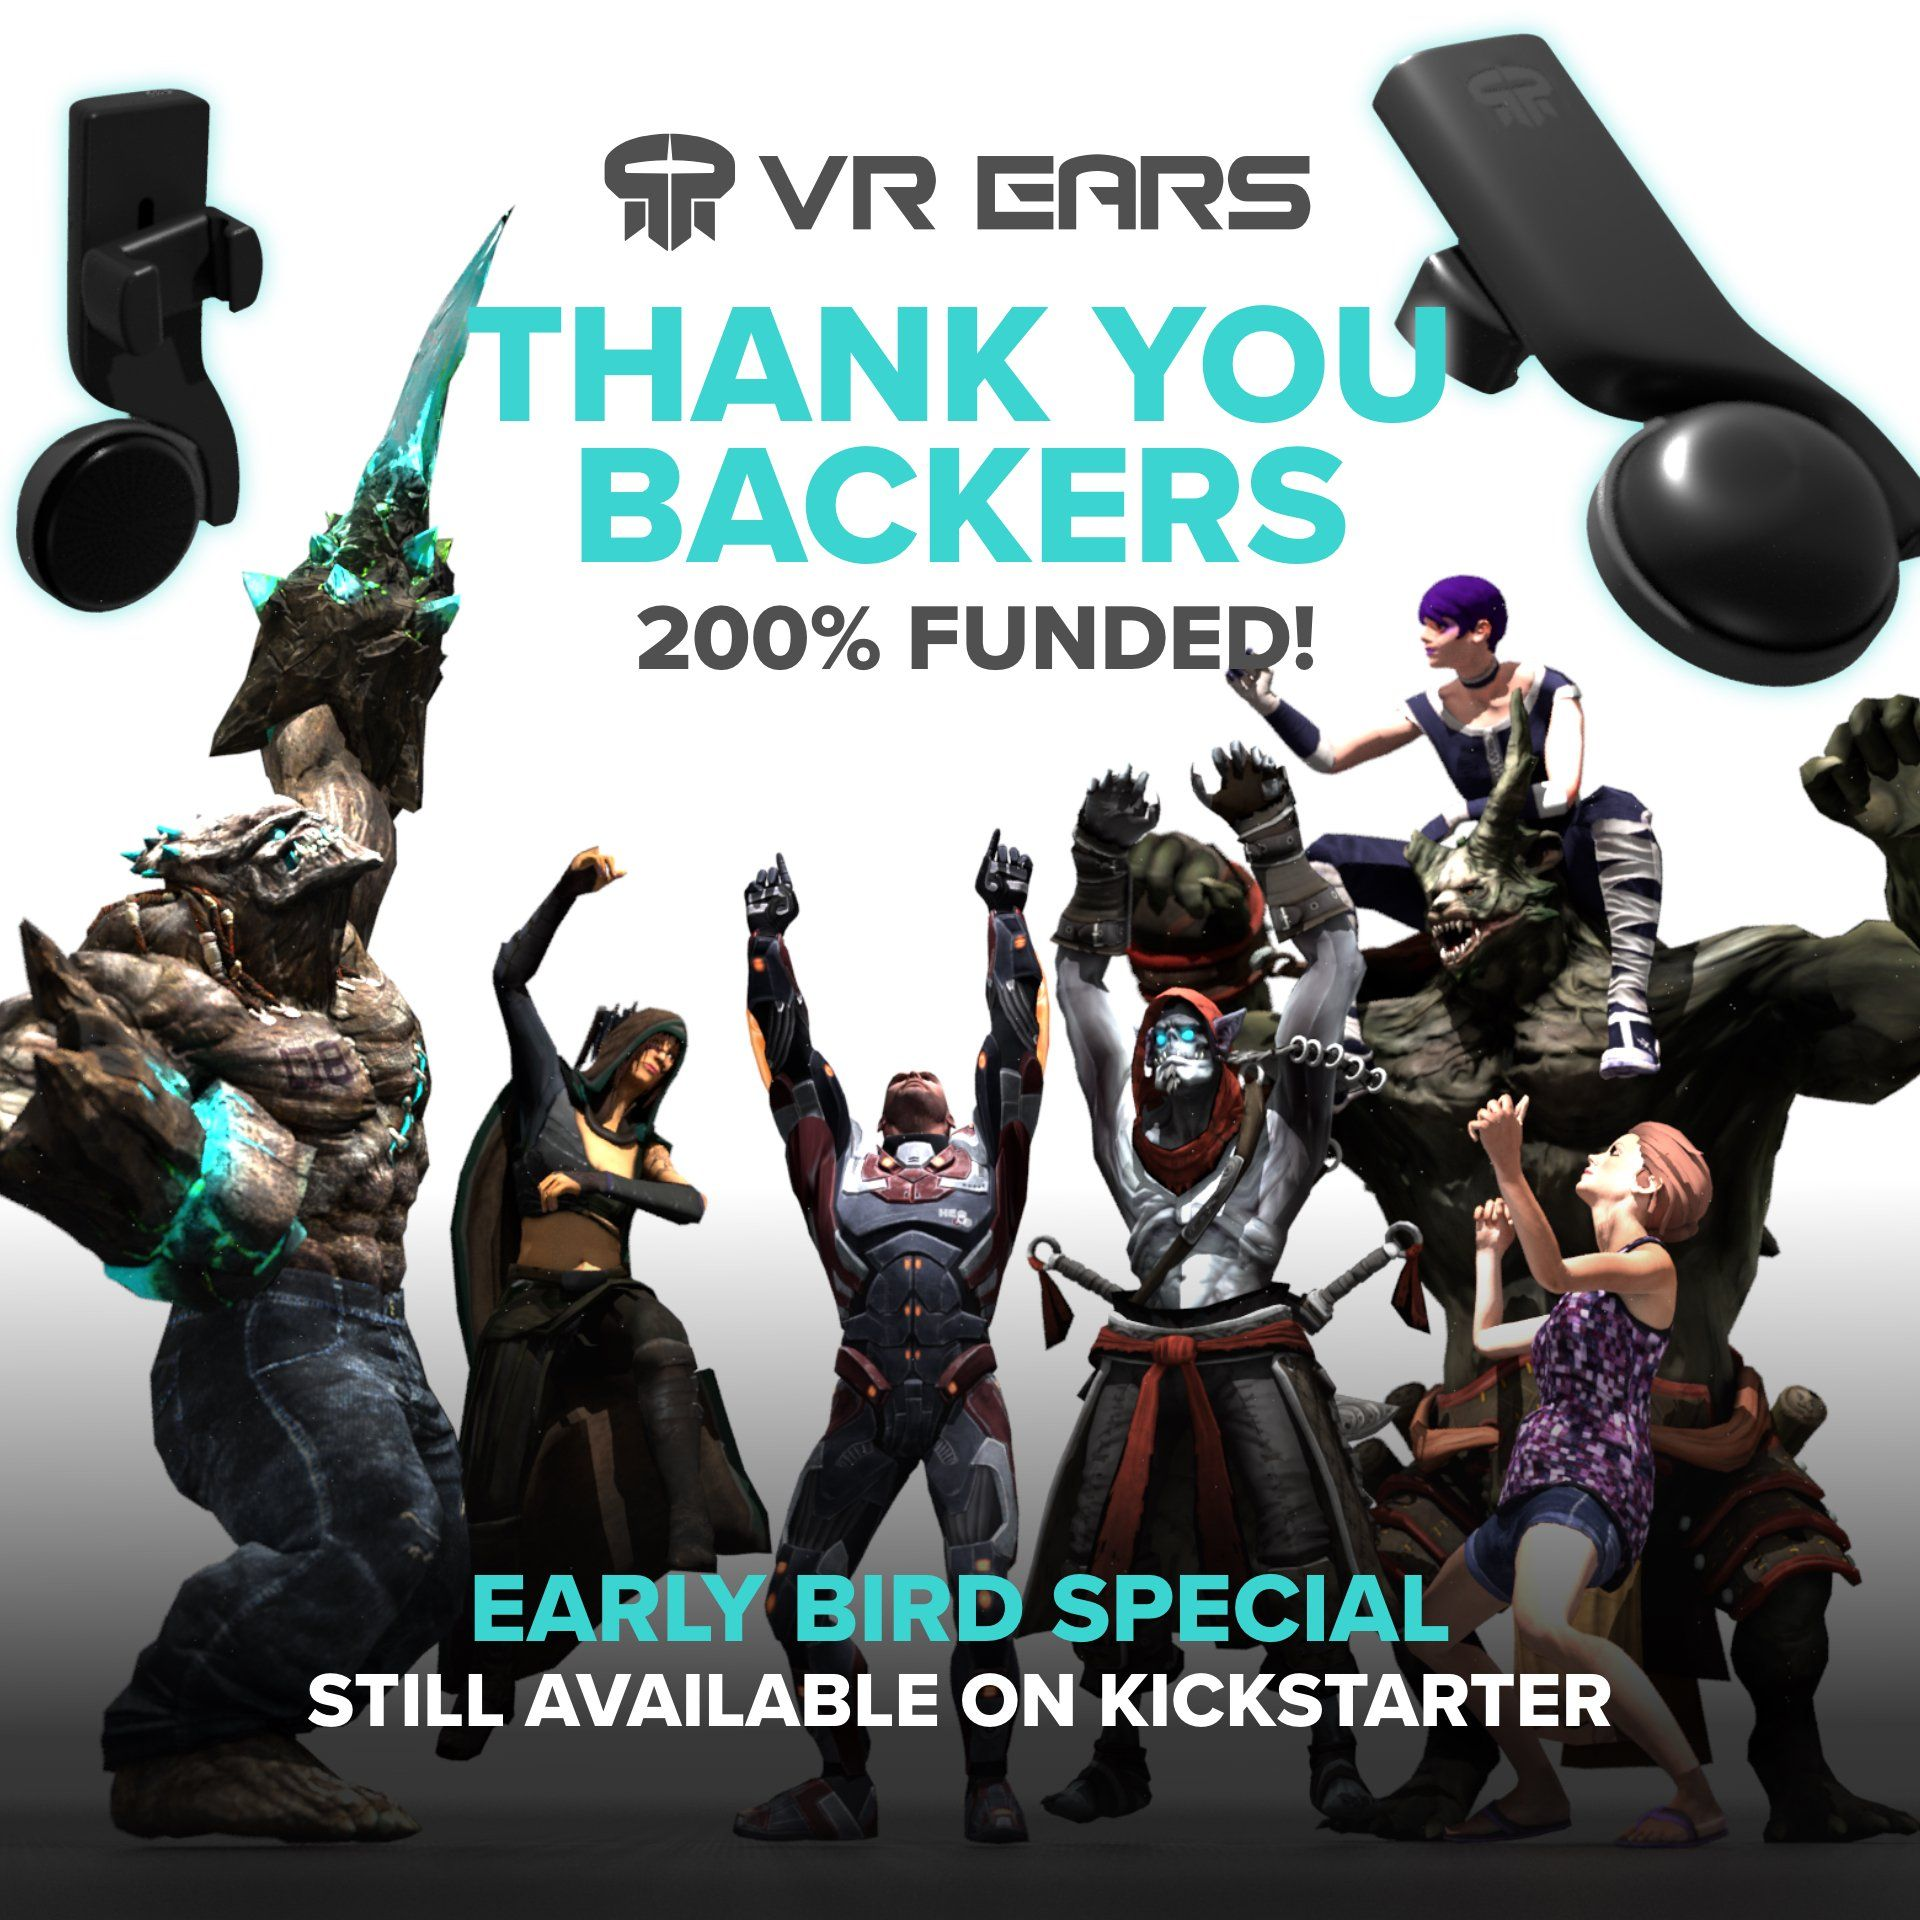 VR Ears are Fully Funded on Kickstarter within 4 Hours!